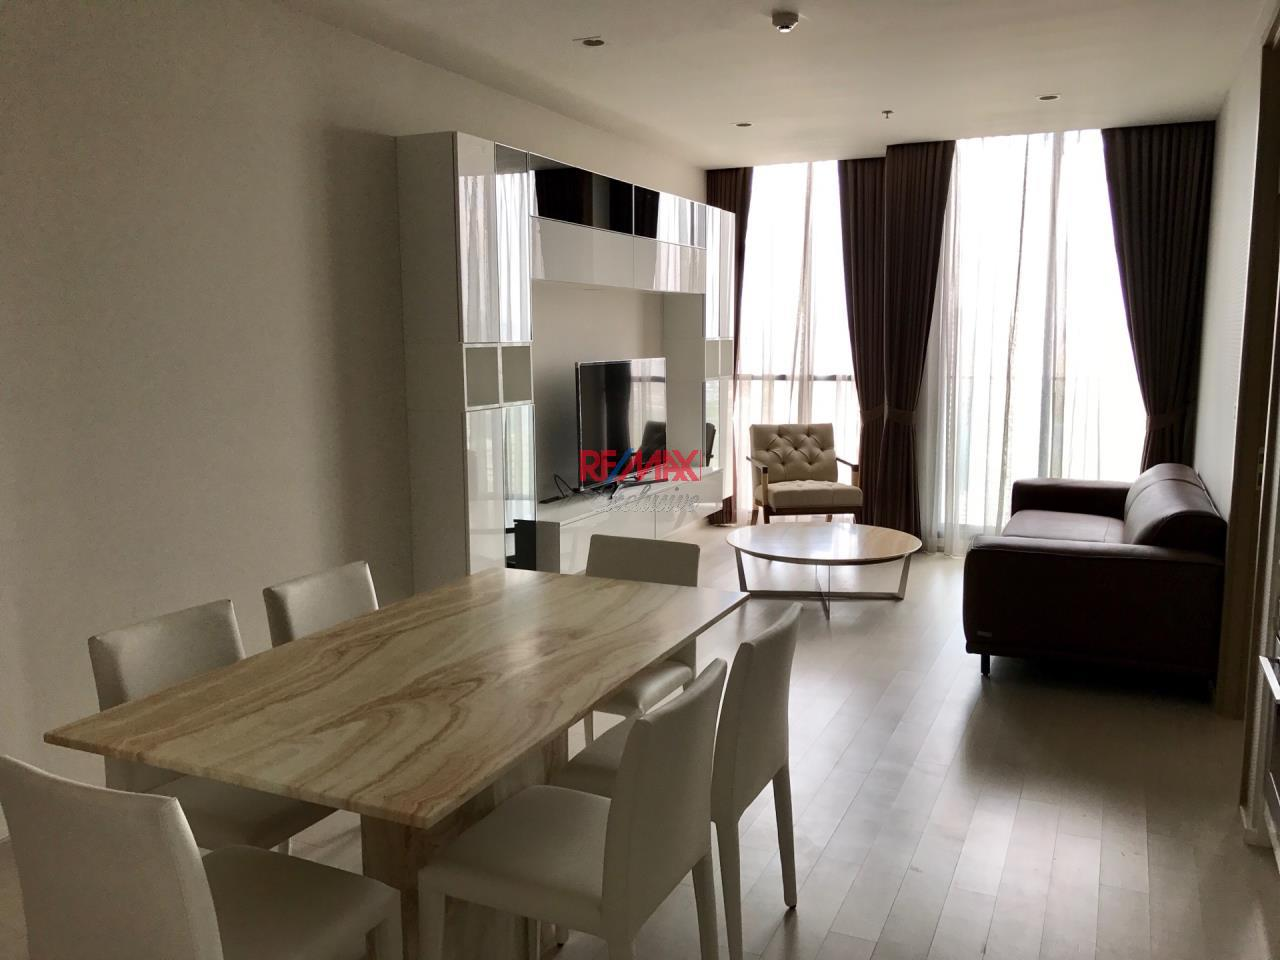 RE/MAX Exclusive Agency's Noble Ploenchit 2 Bedrooms, 2 Bathrooms, 85 Sqm., For Rent and Sale!! 2